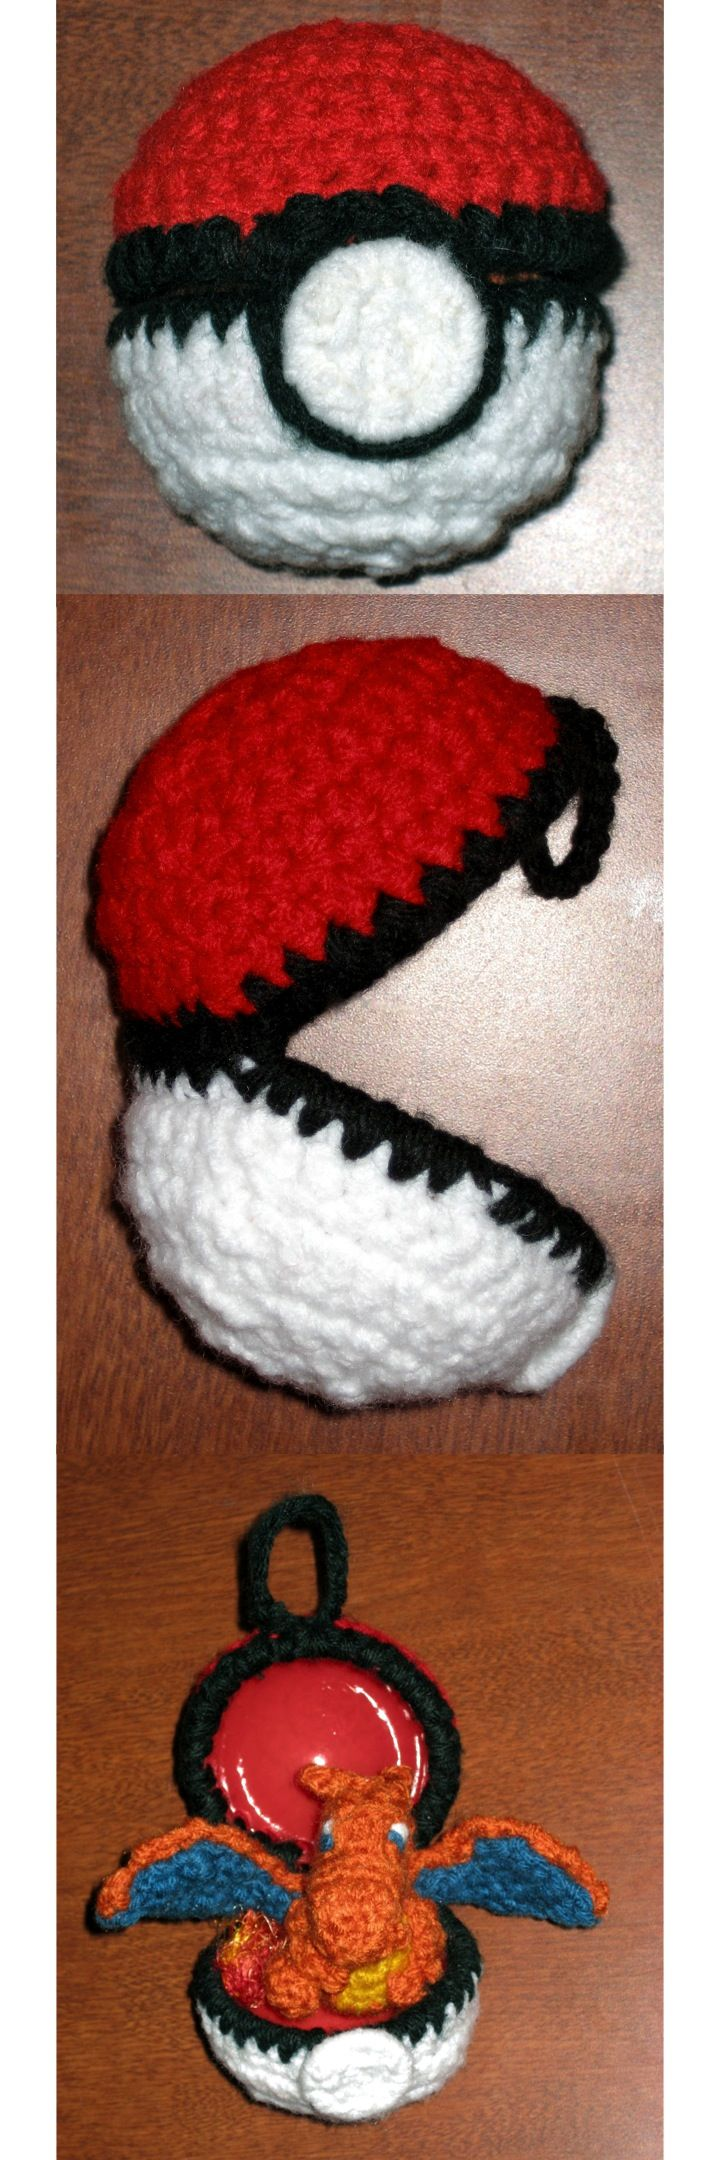 Positioning Amigurumi Eyes : 1000+ images about Crochet and Knit Ideas on Pinterest